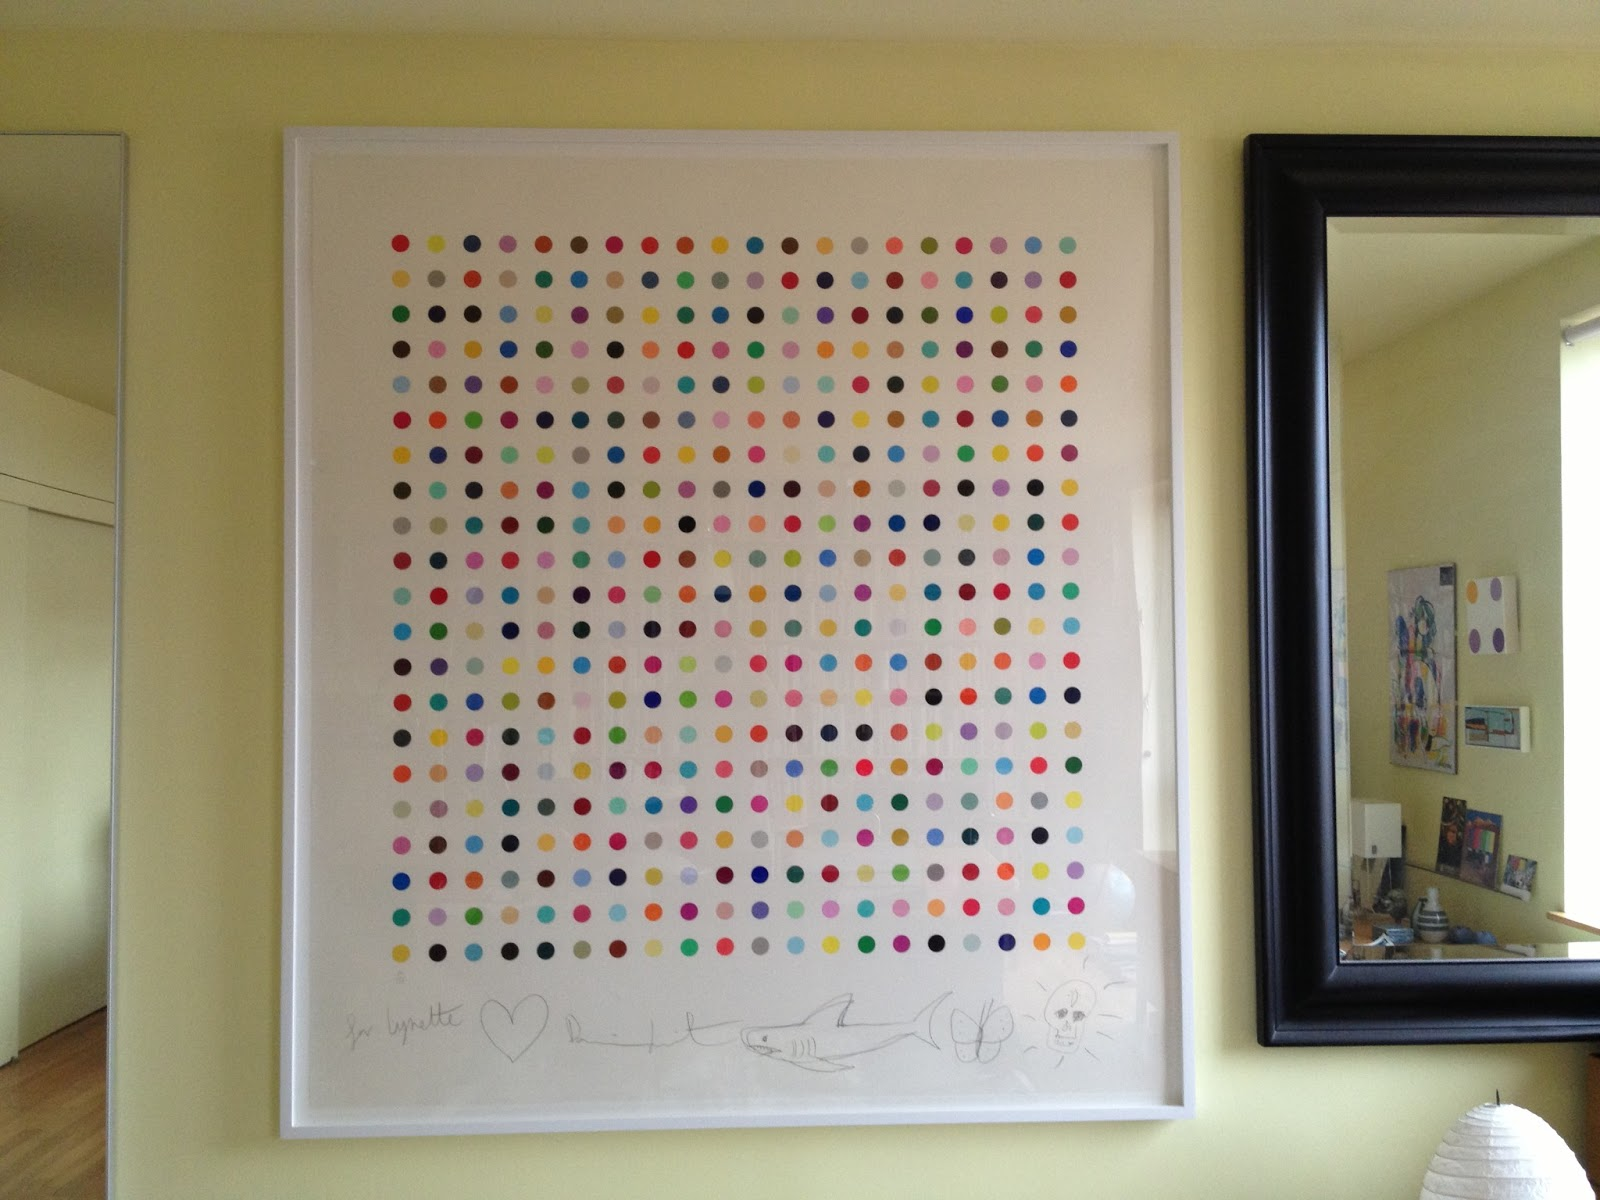 Damien Hirst Spot Challenge: It's time to collect!